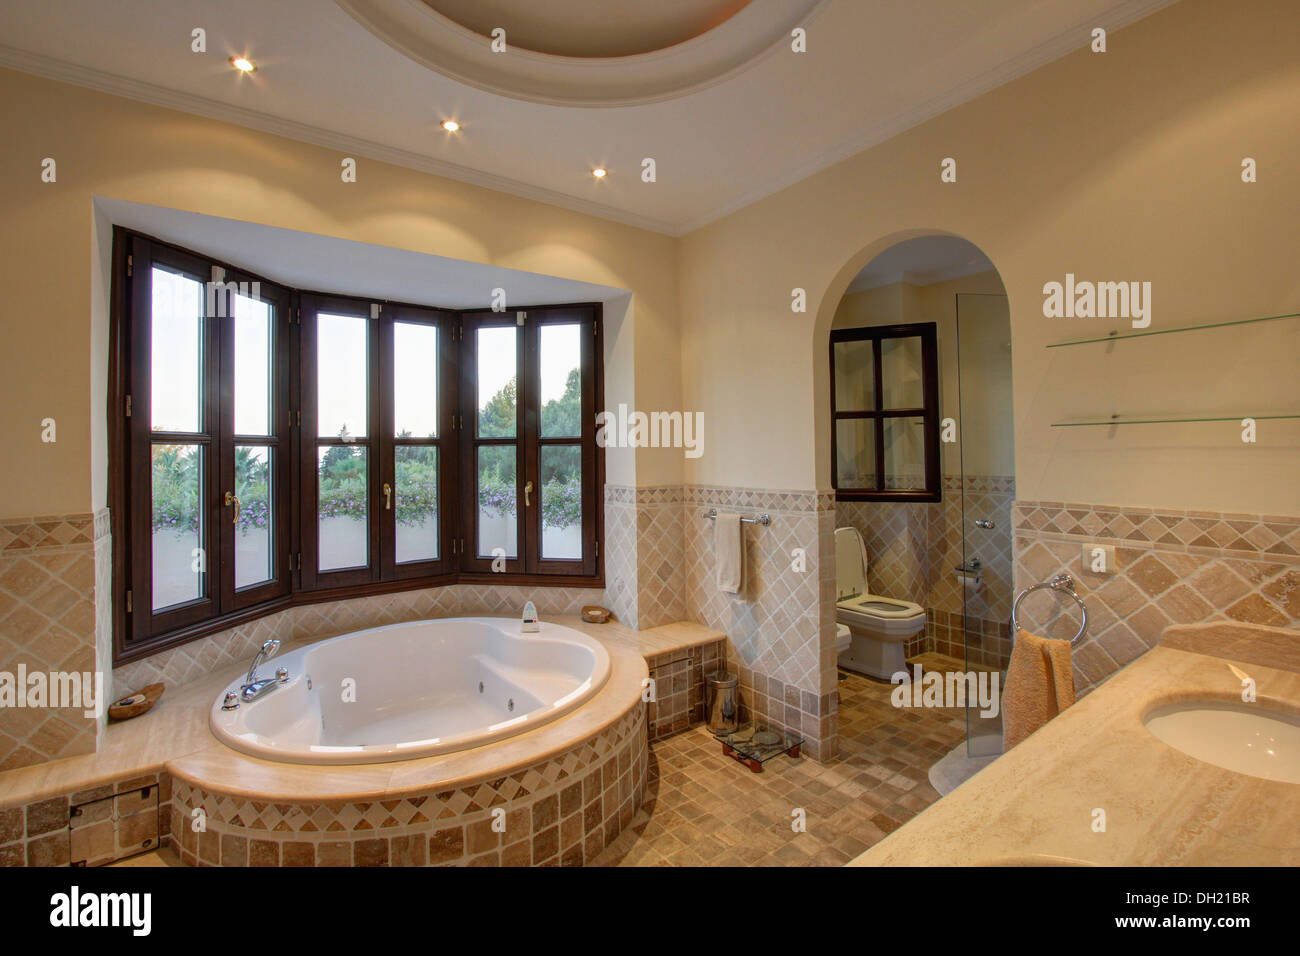 Oval Spa Bathtub Below Bay Window In Modern Spanish Bathroom With Stock Photo Alamy